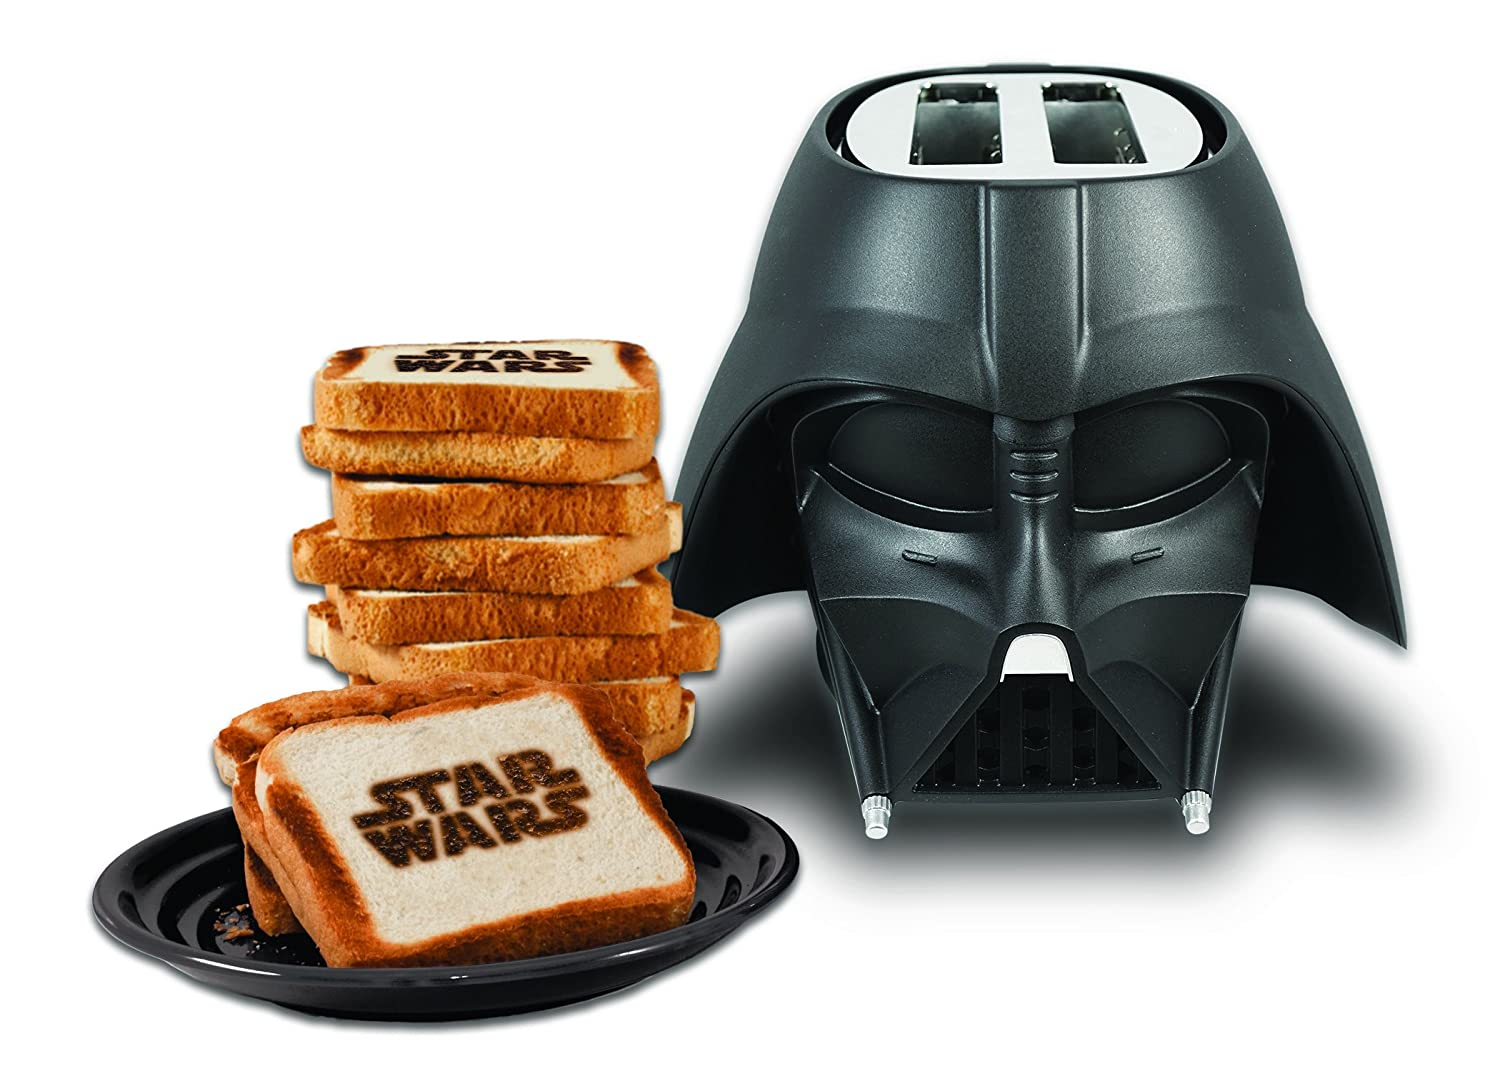 A list of Cool Gadgets for any Star Wars fans